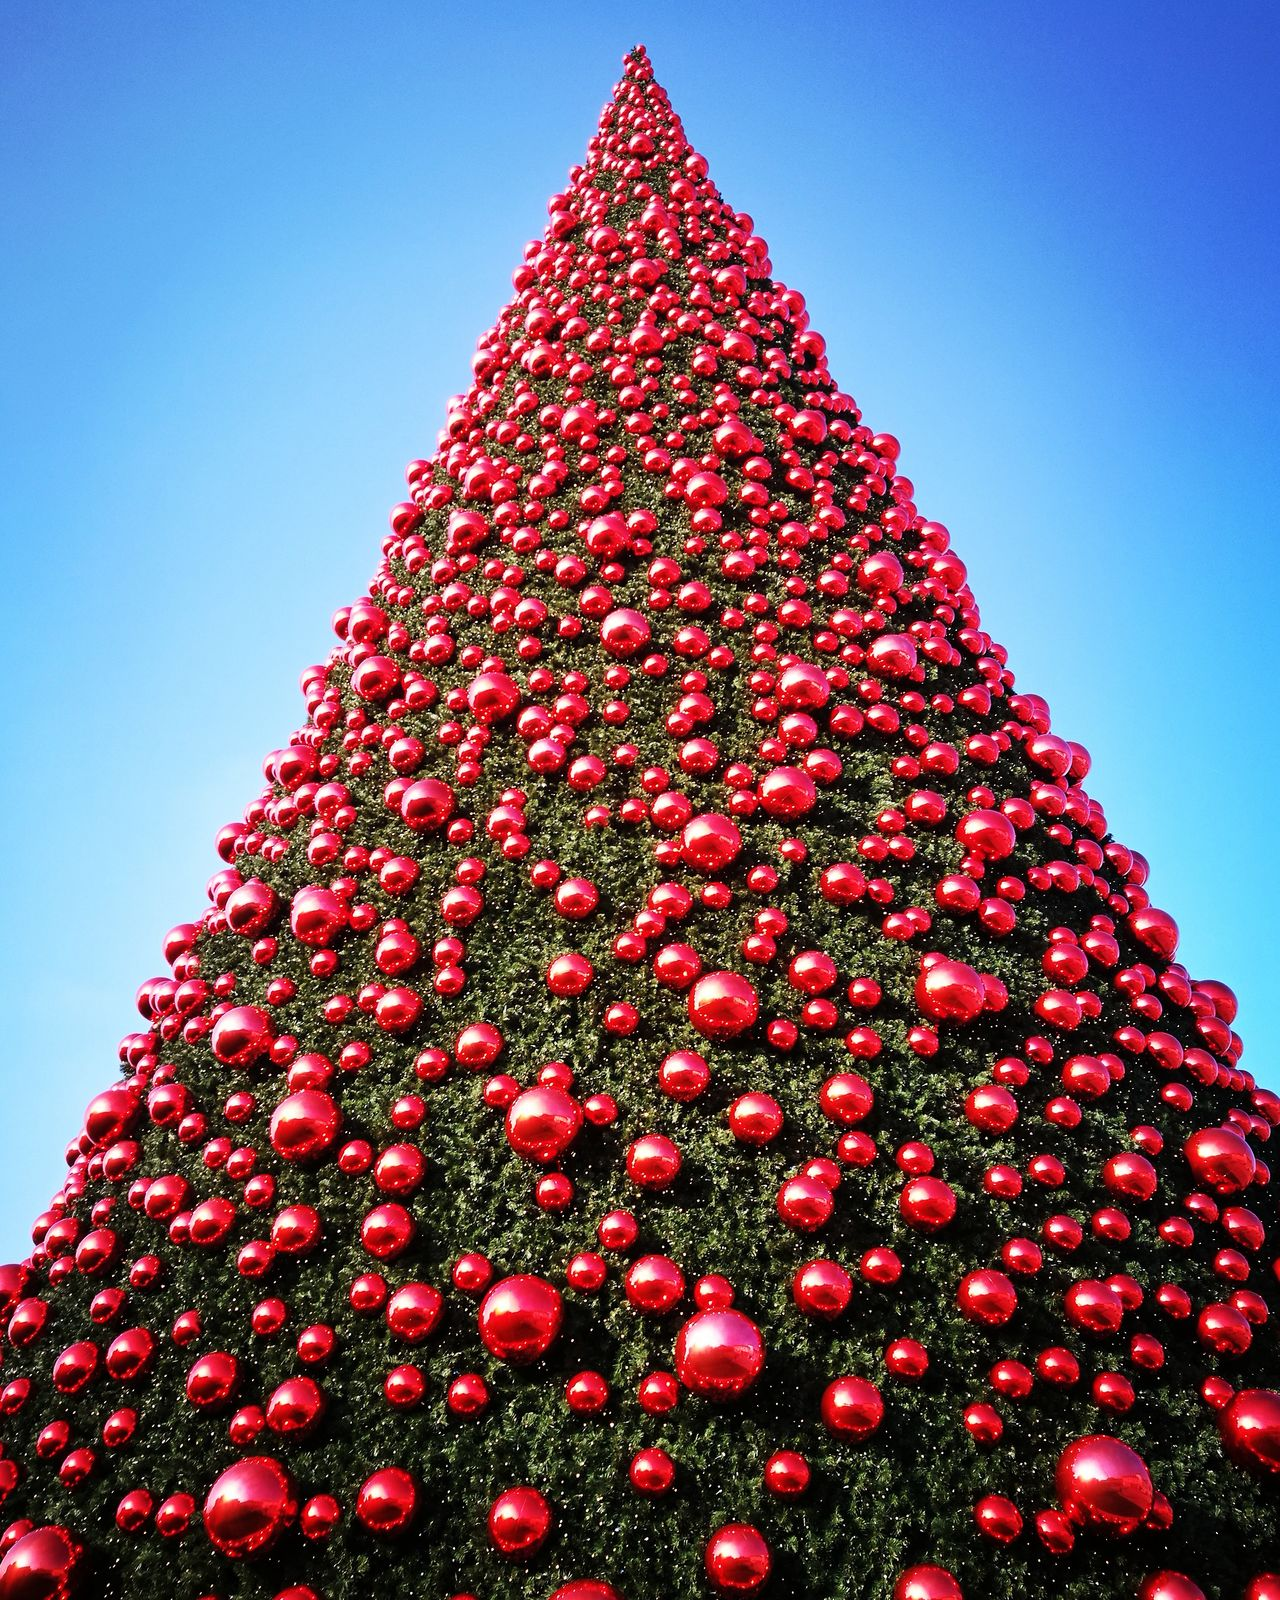 Red Christmas Celebration Sky Christmas Tree Christmas Decoration No People Low Angle View Tree Outdoors Christmas Ornament Day Ball Mcarthurglennoutlet Outlet Venice Prospectives Vivid Colors